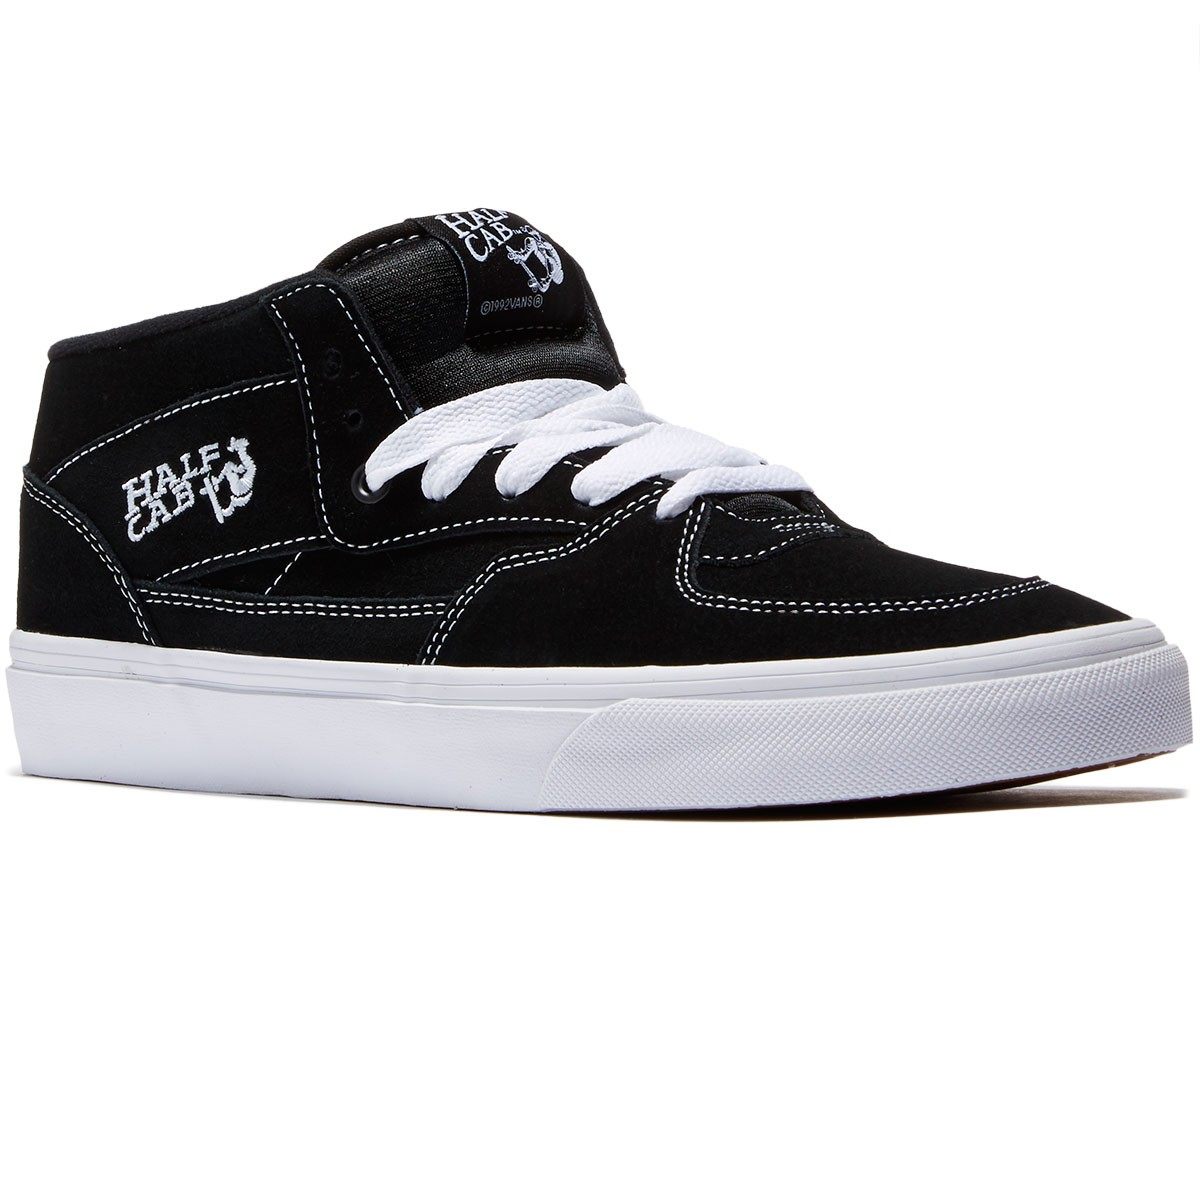 8e66b94d554189 Vans Half Cab Shoes - Black - 6.0